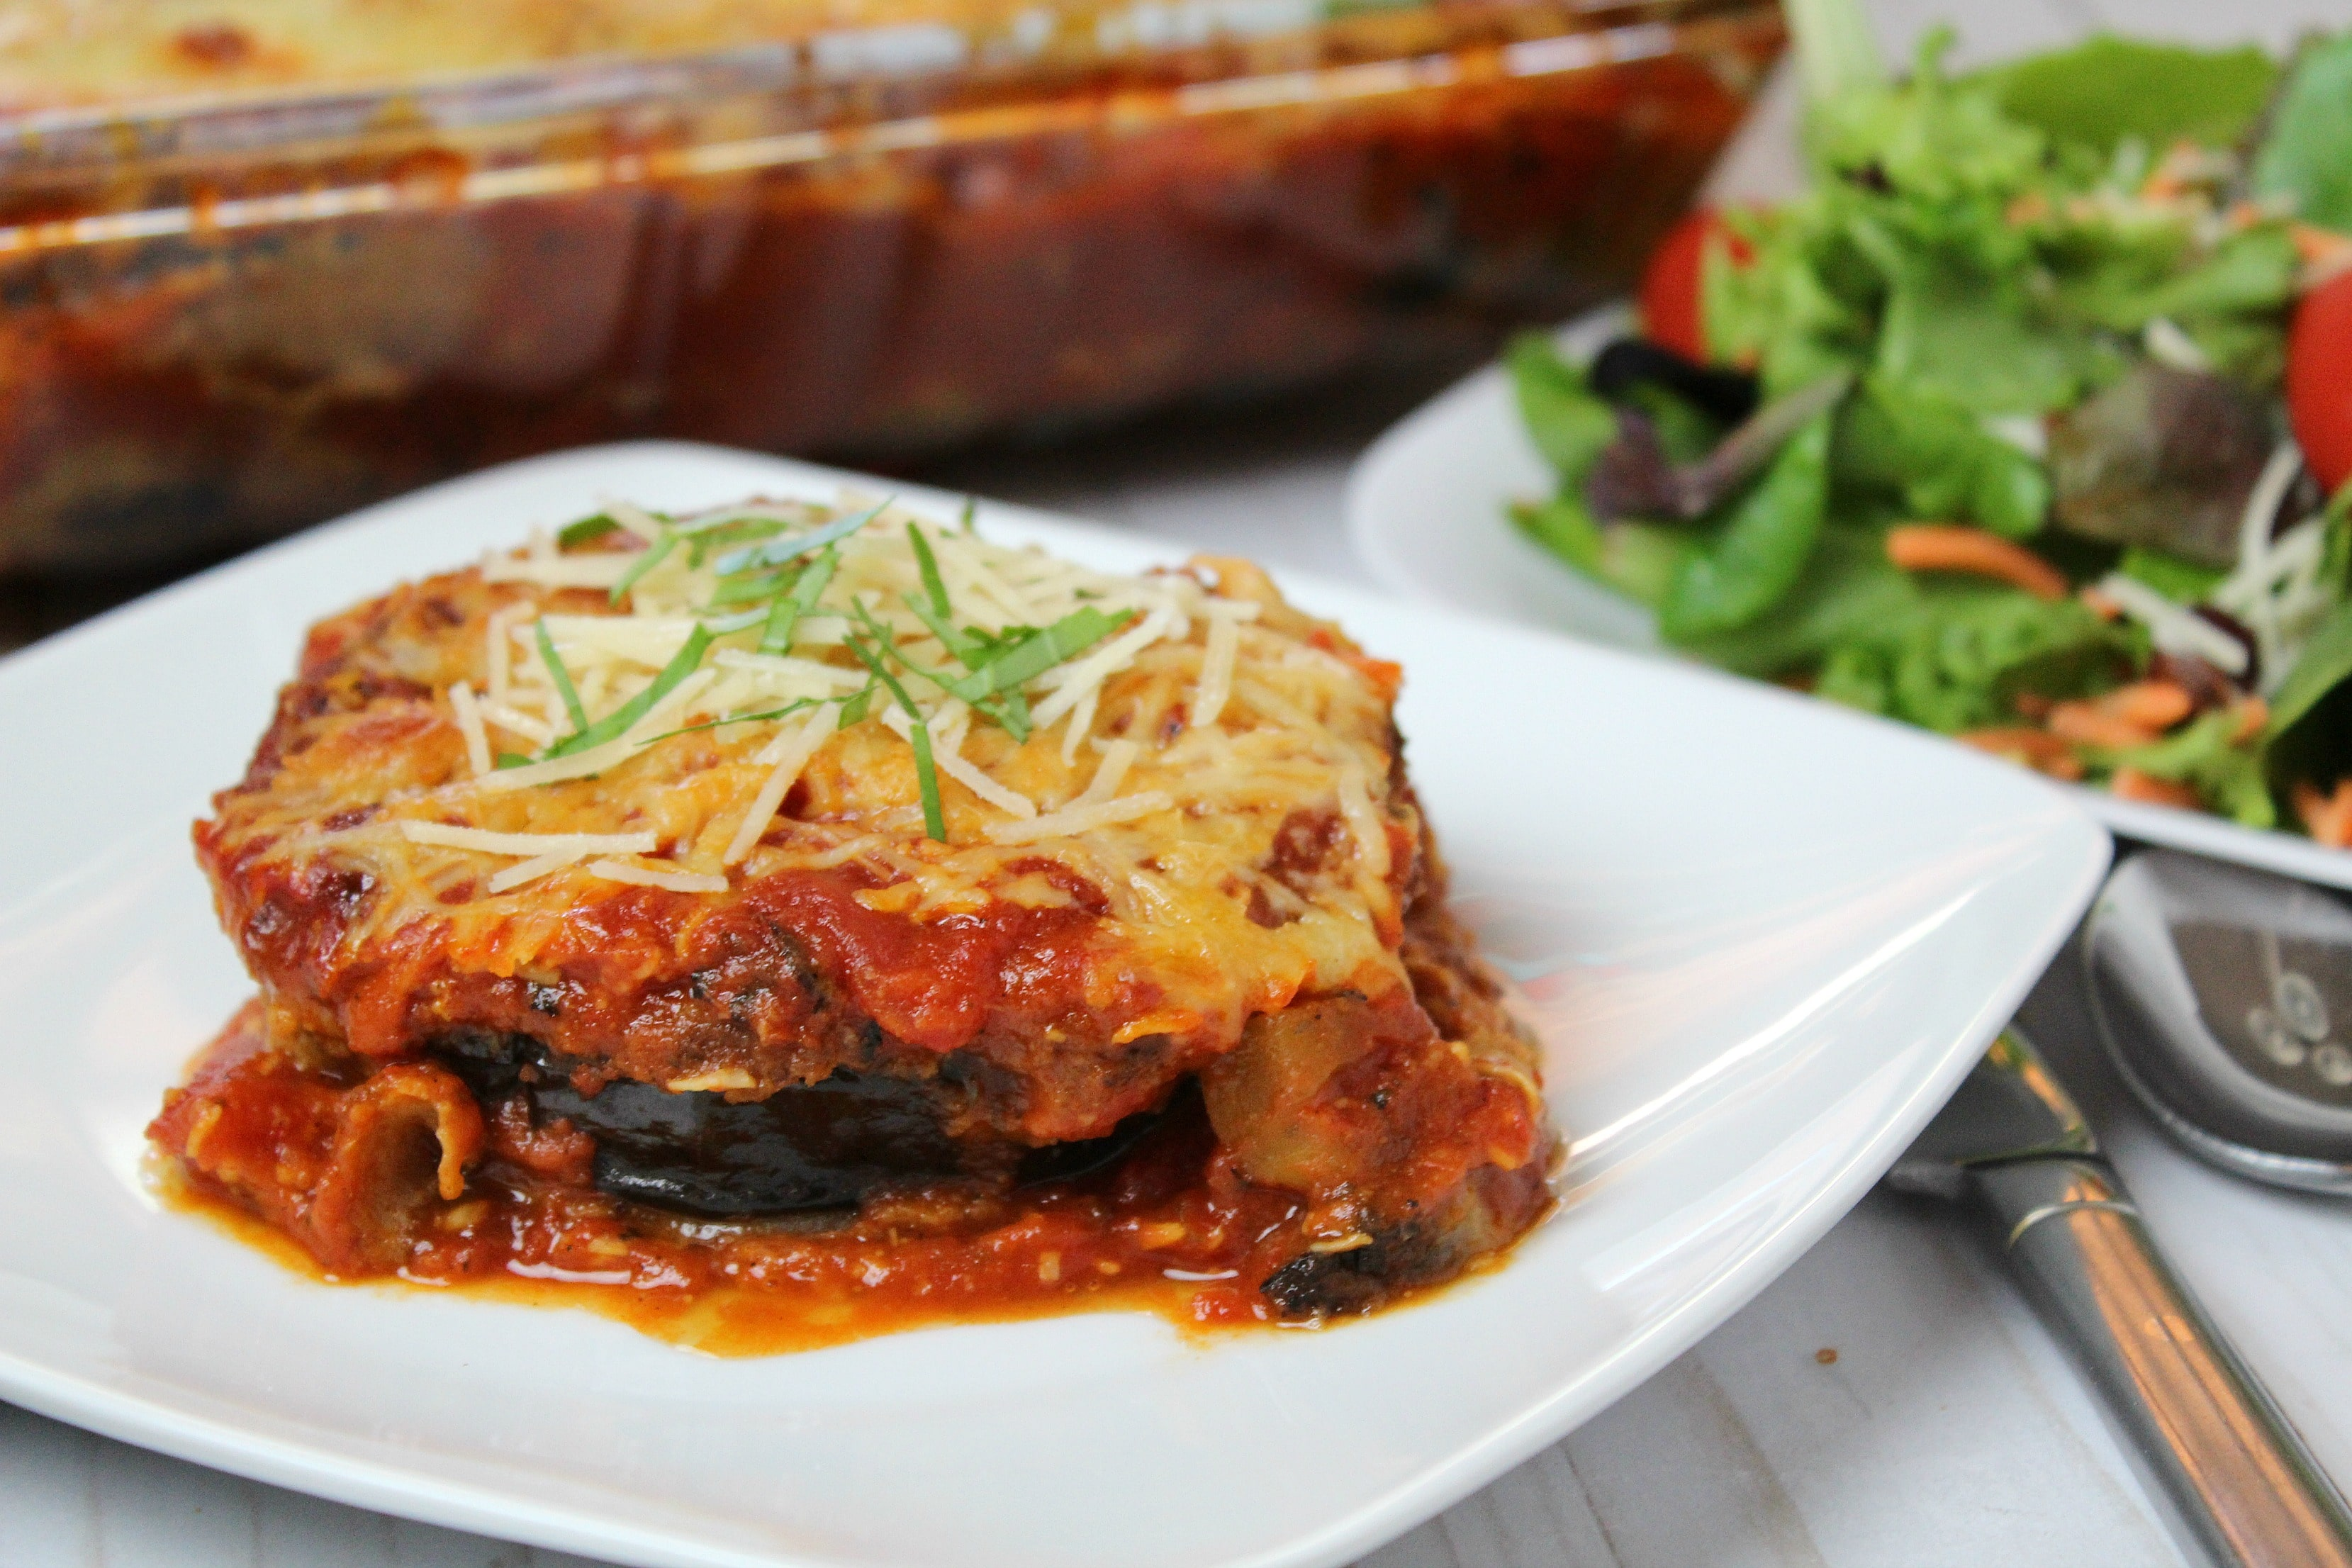 Serve finished eggplant Parmesan in plate with garnish.